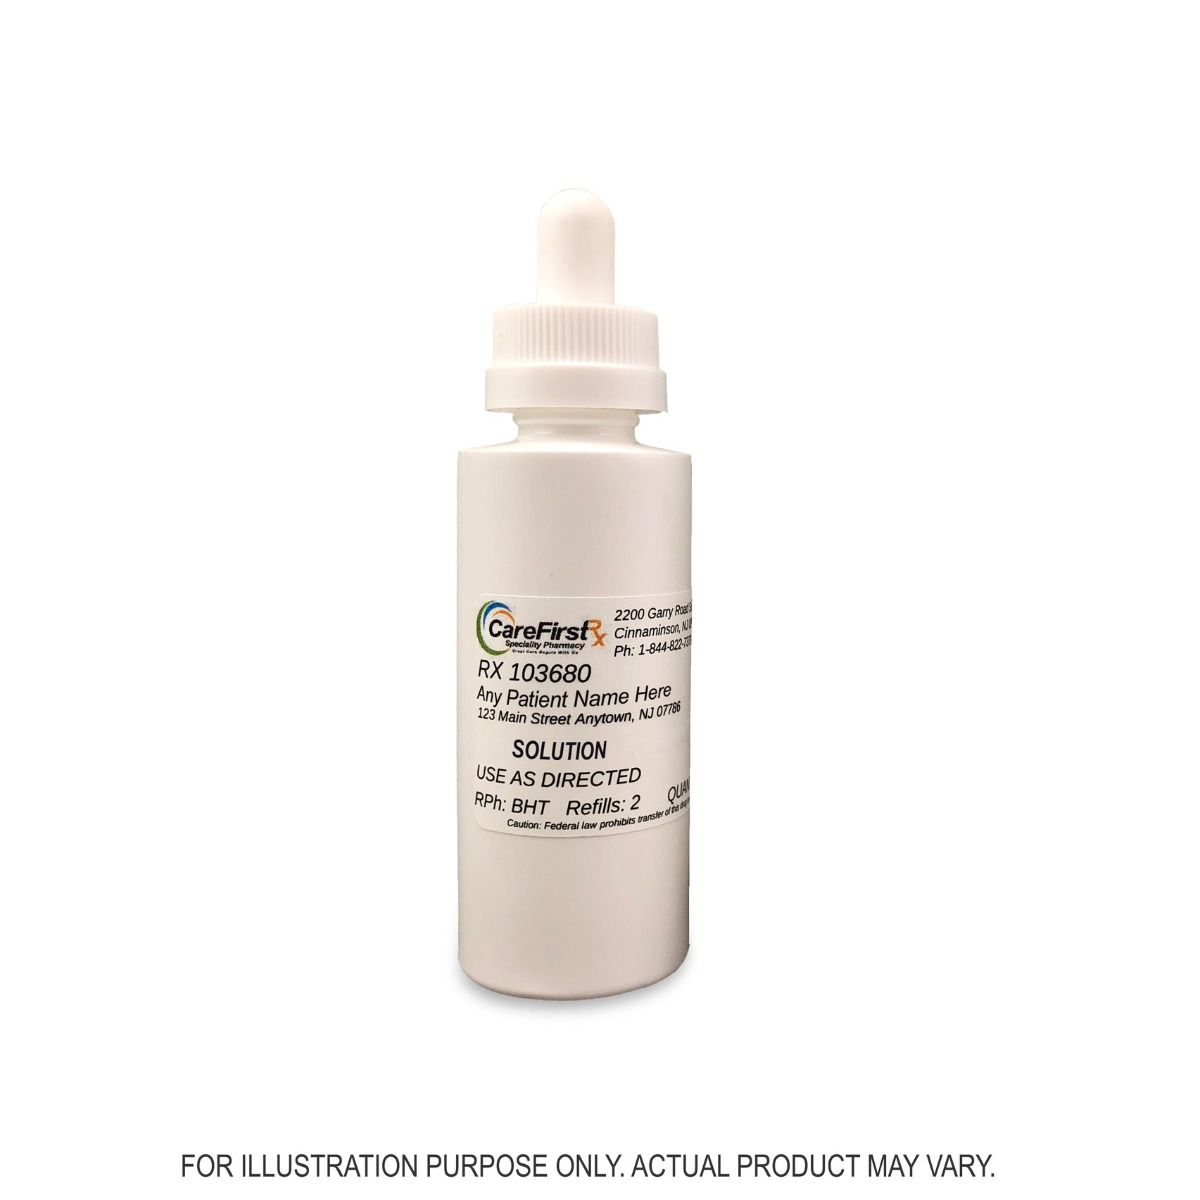 Minoxidil Finasteride Azelaic Acid Progesterone Tretinoin Topical Solution Compounded